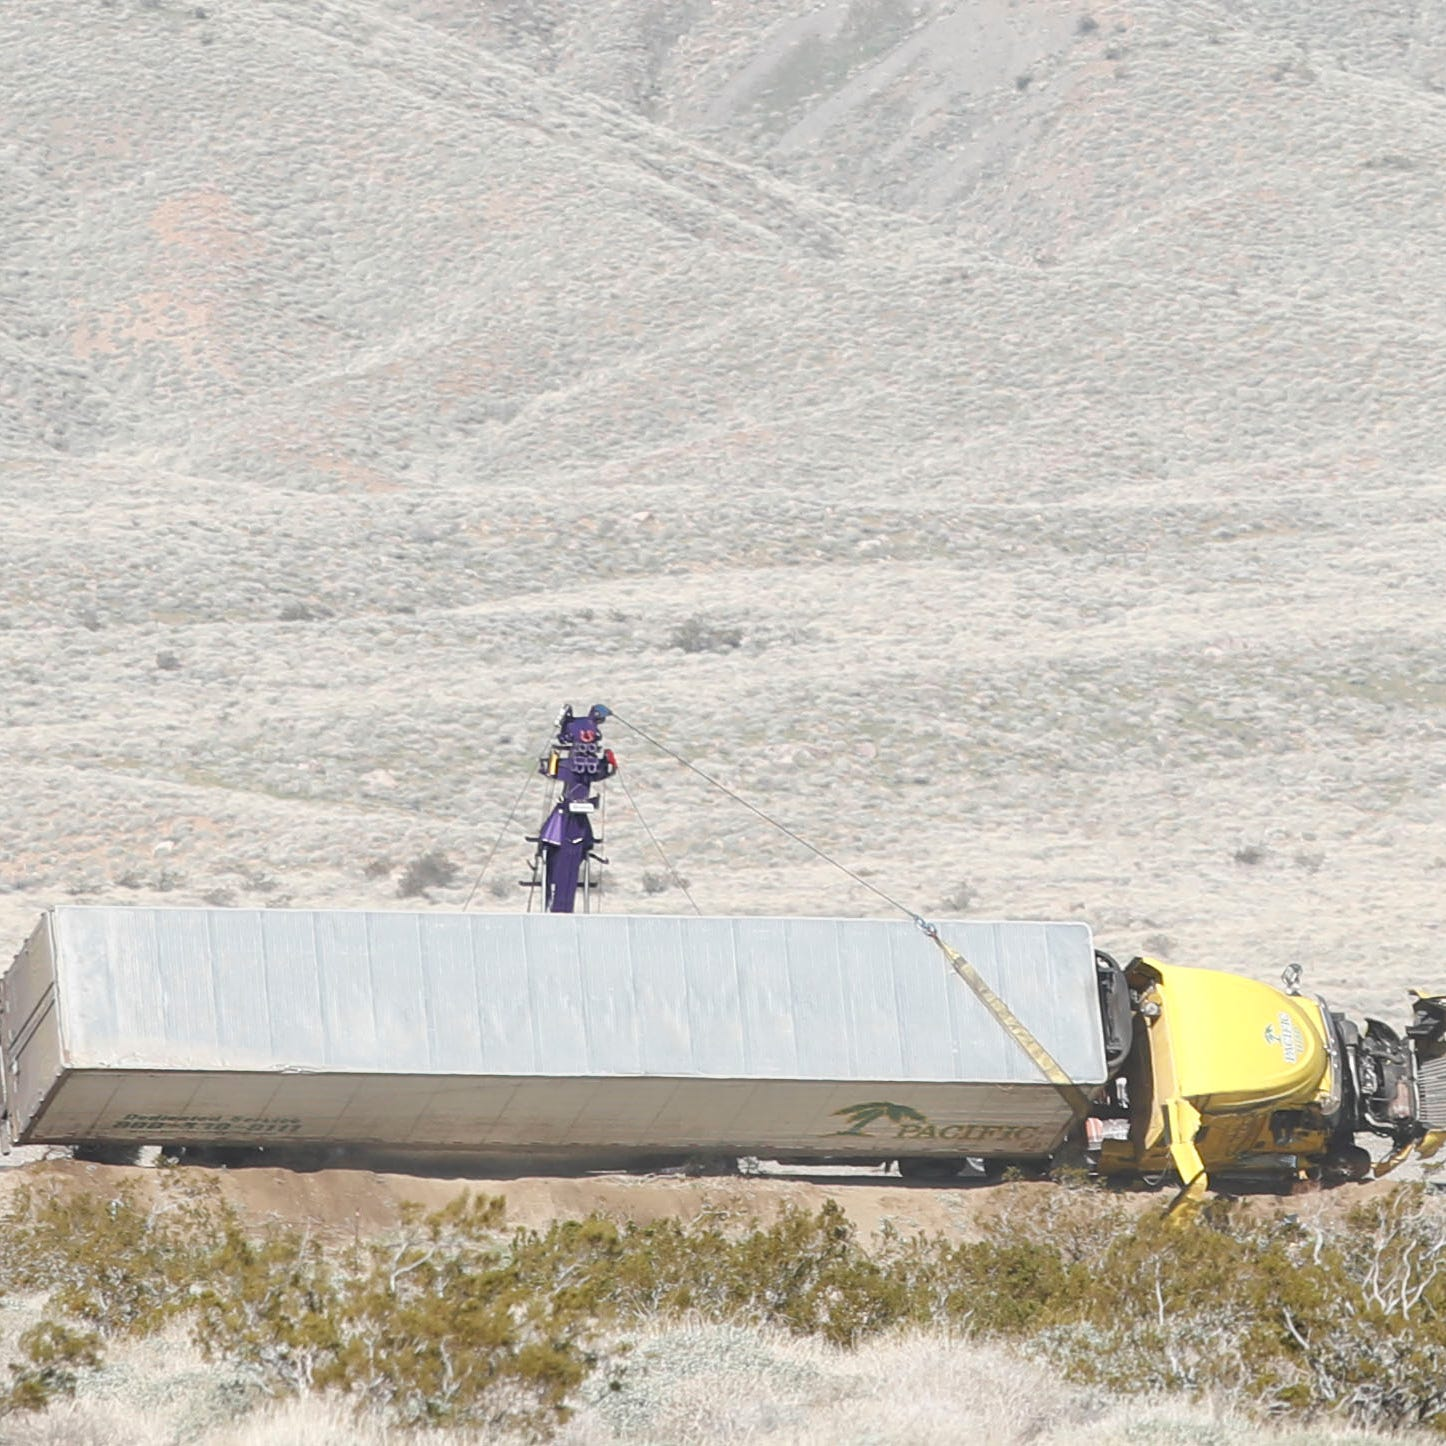 High winds knock out power across Coachella Valley; big rig flips on Highway 62